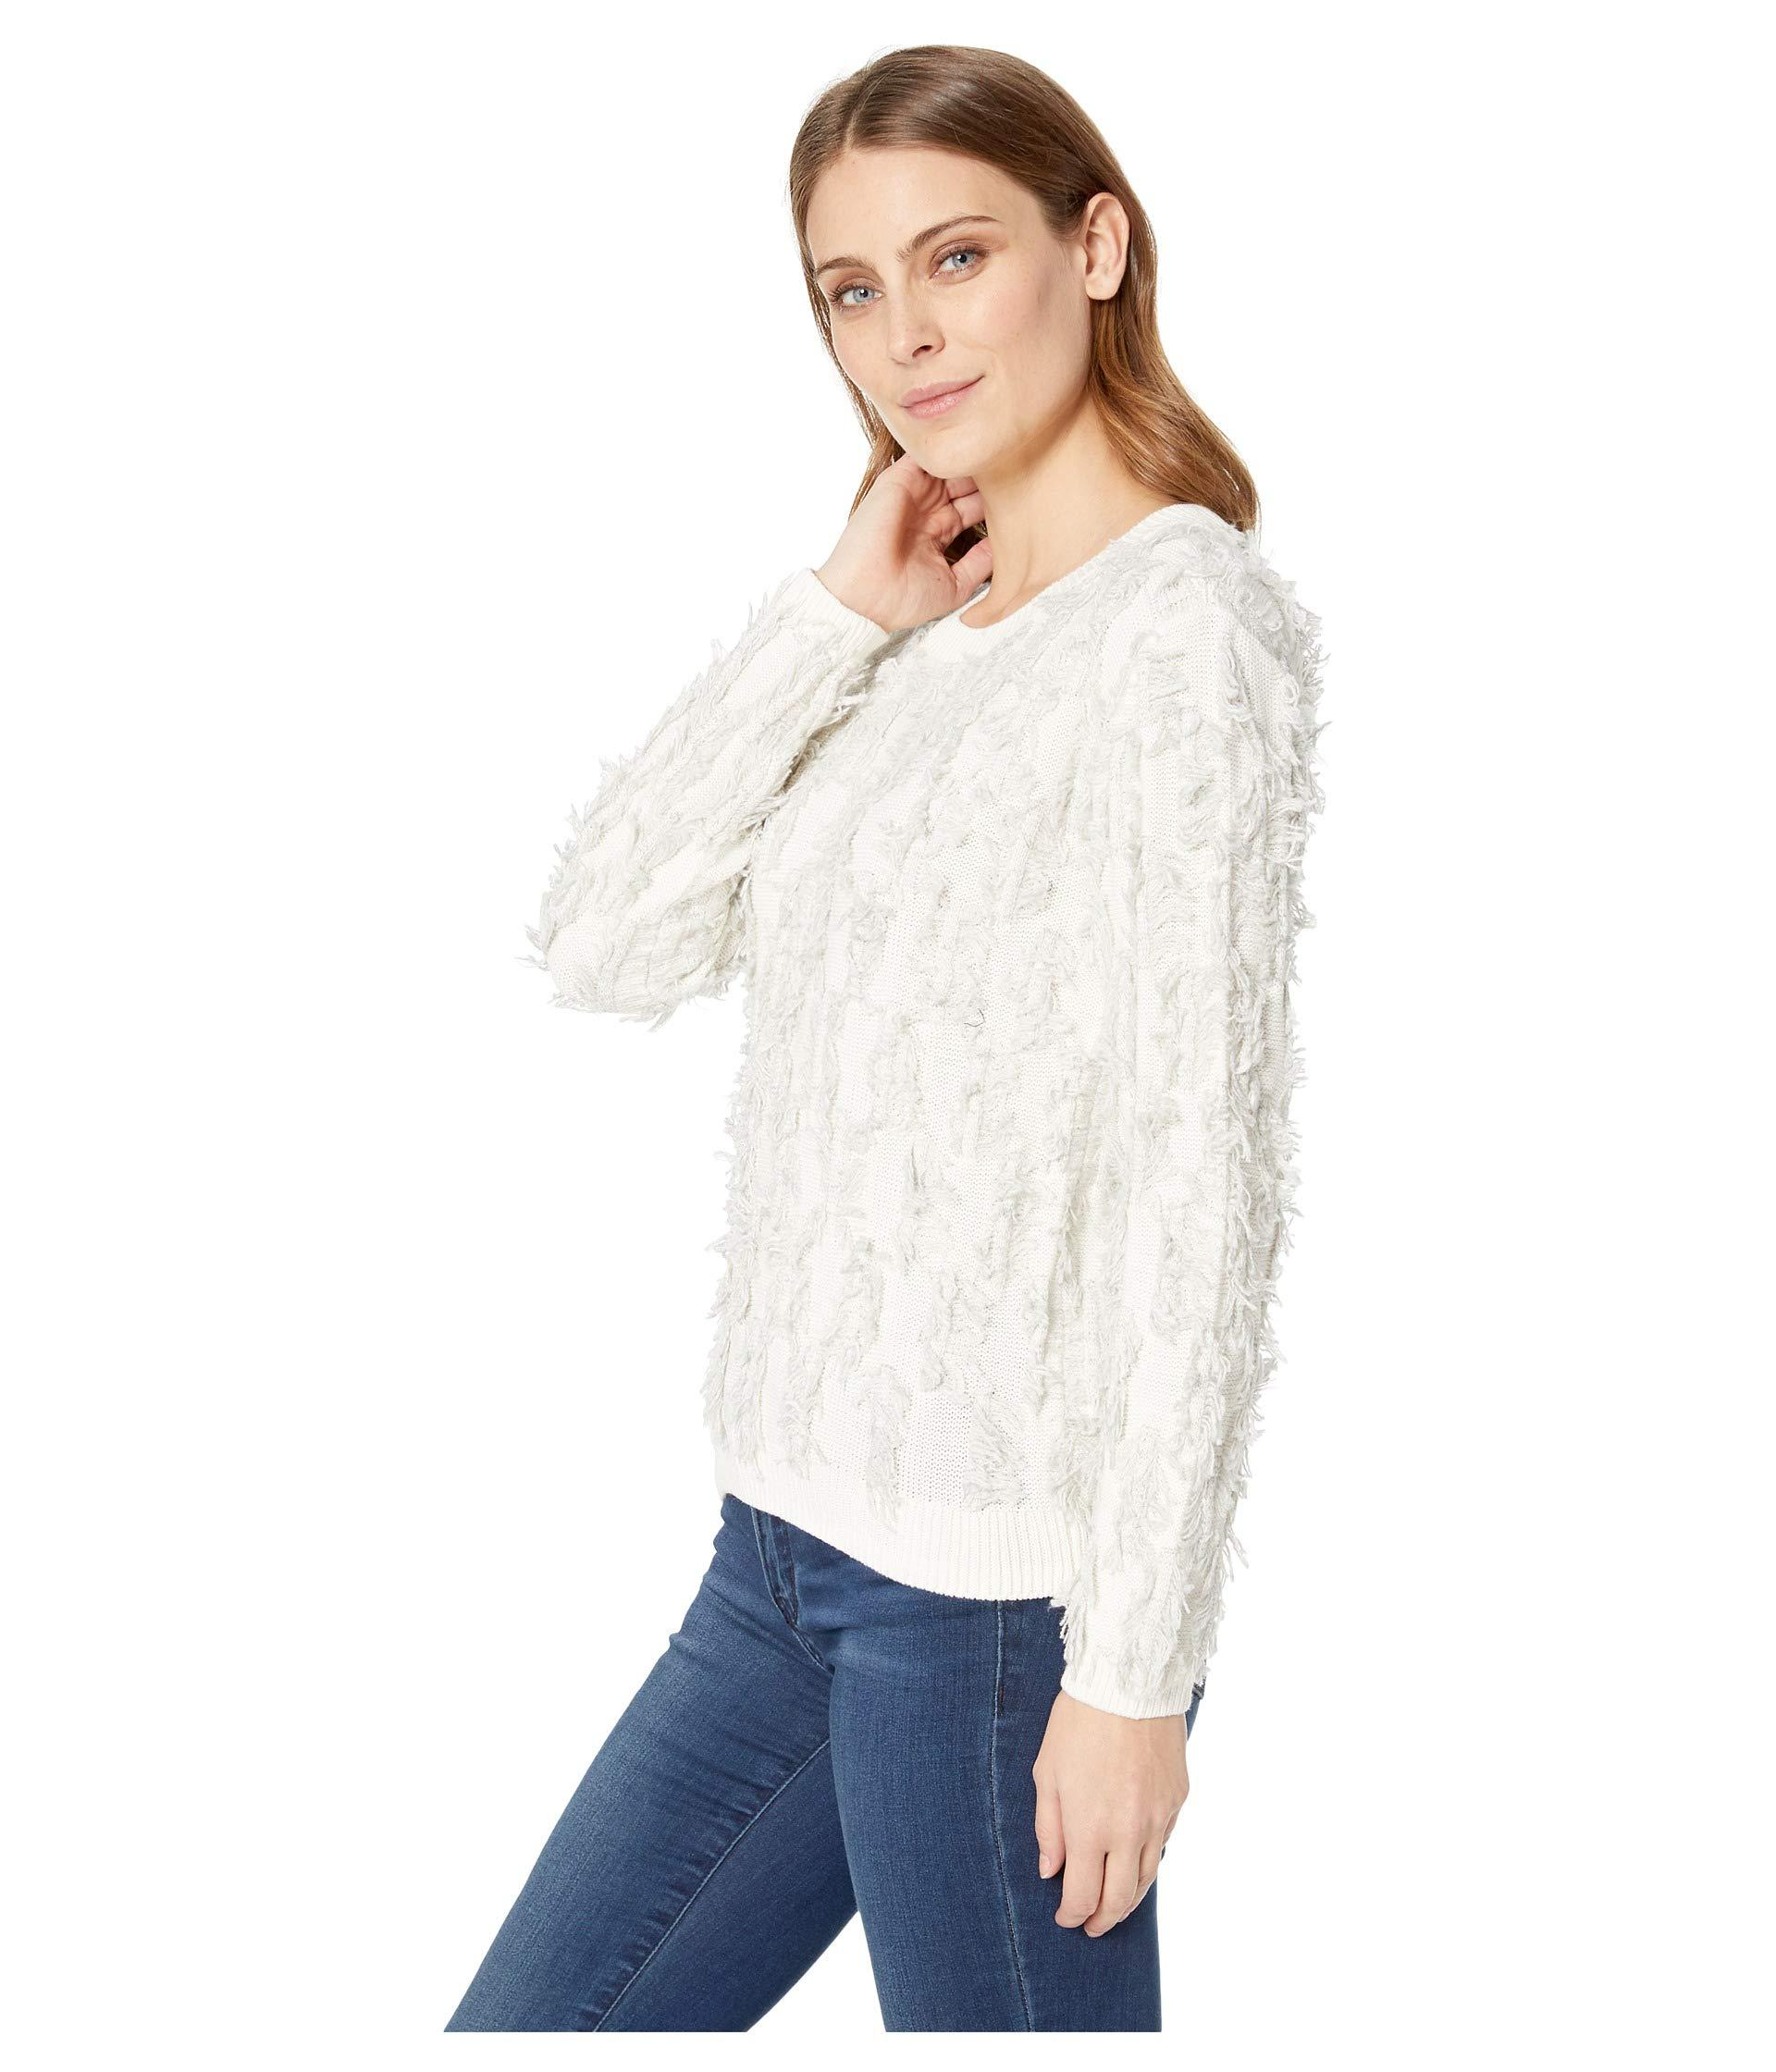 d5a579c40d23f Lyst - Two By Vince Camuto Long Sleeve Crew Neck Fringe Sweater in White